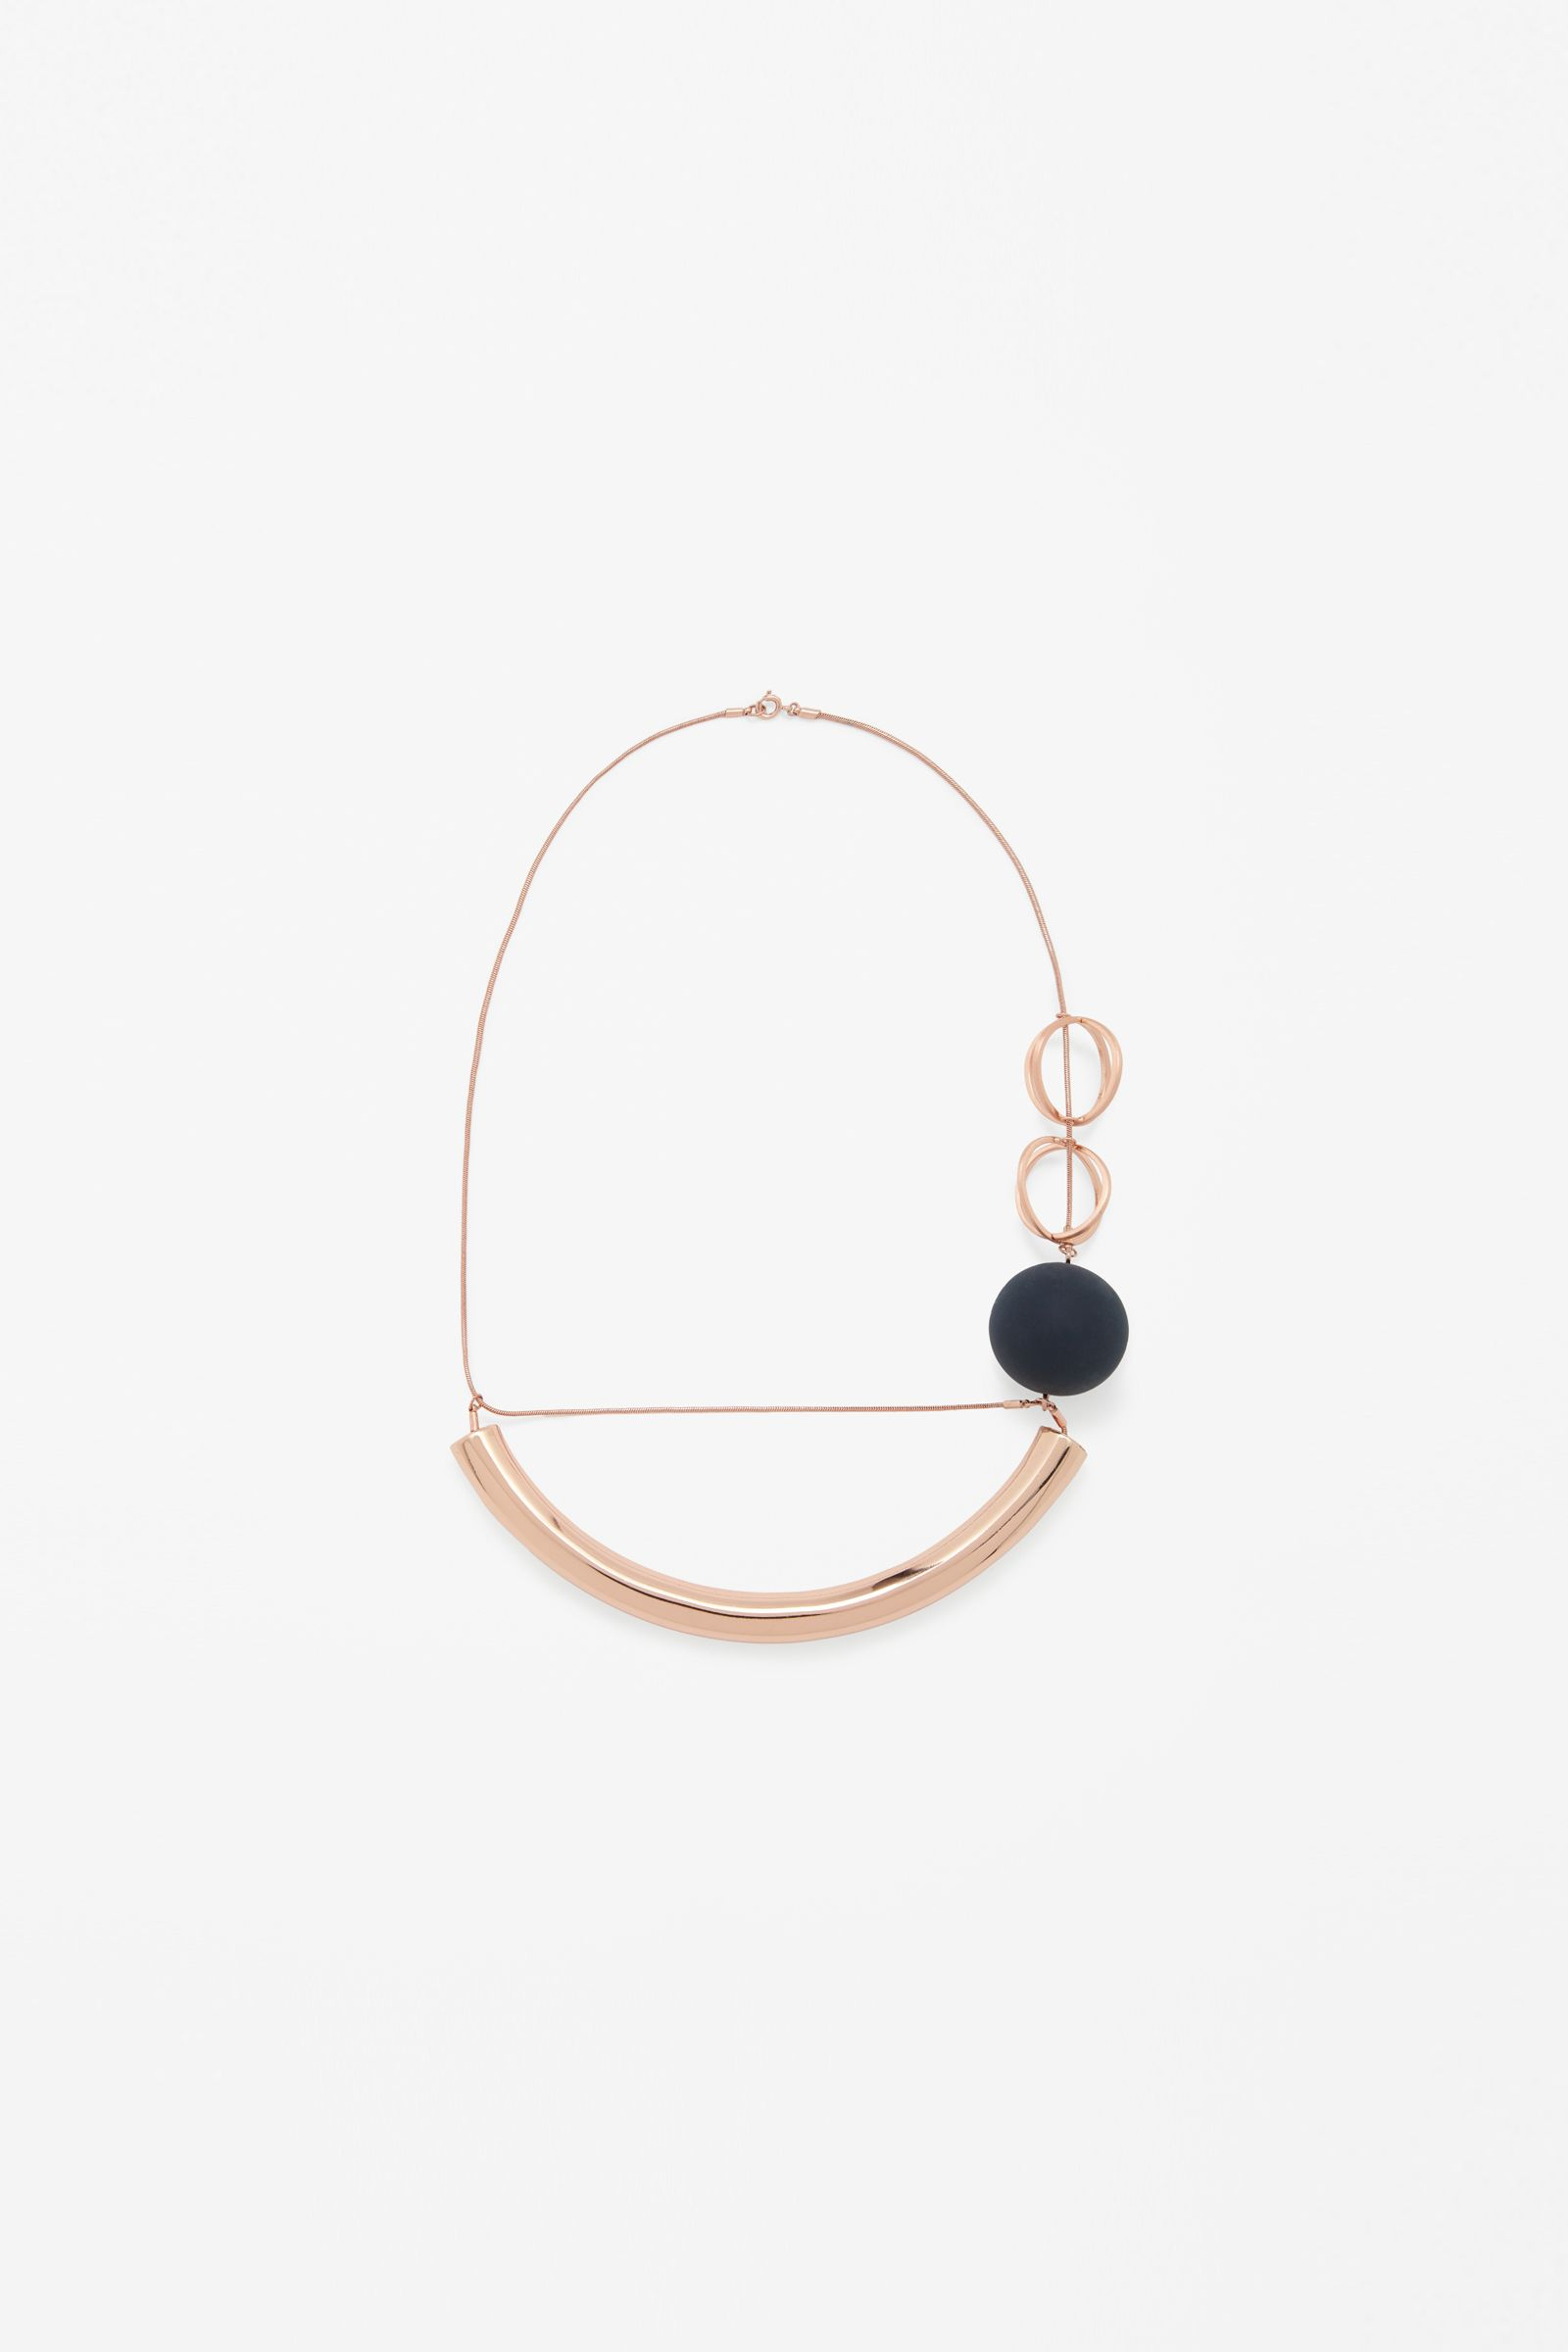 Cos | Geometric Necklace | Want This | Jewelry, Geometric Necklace Inside 2019 Geometric Lines Necklaces (View 8 of 25)